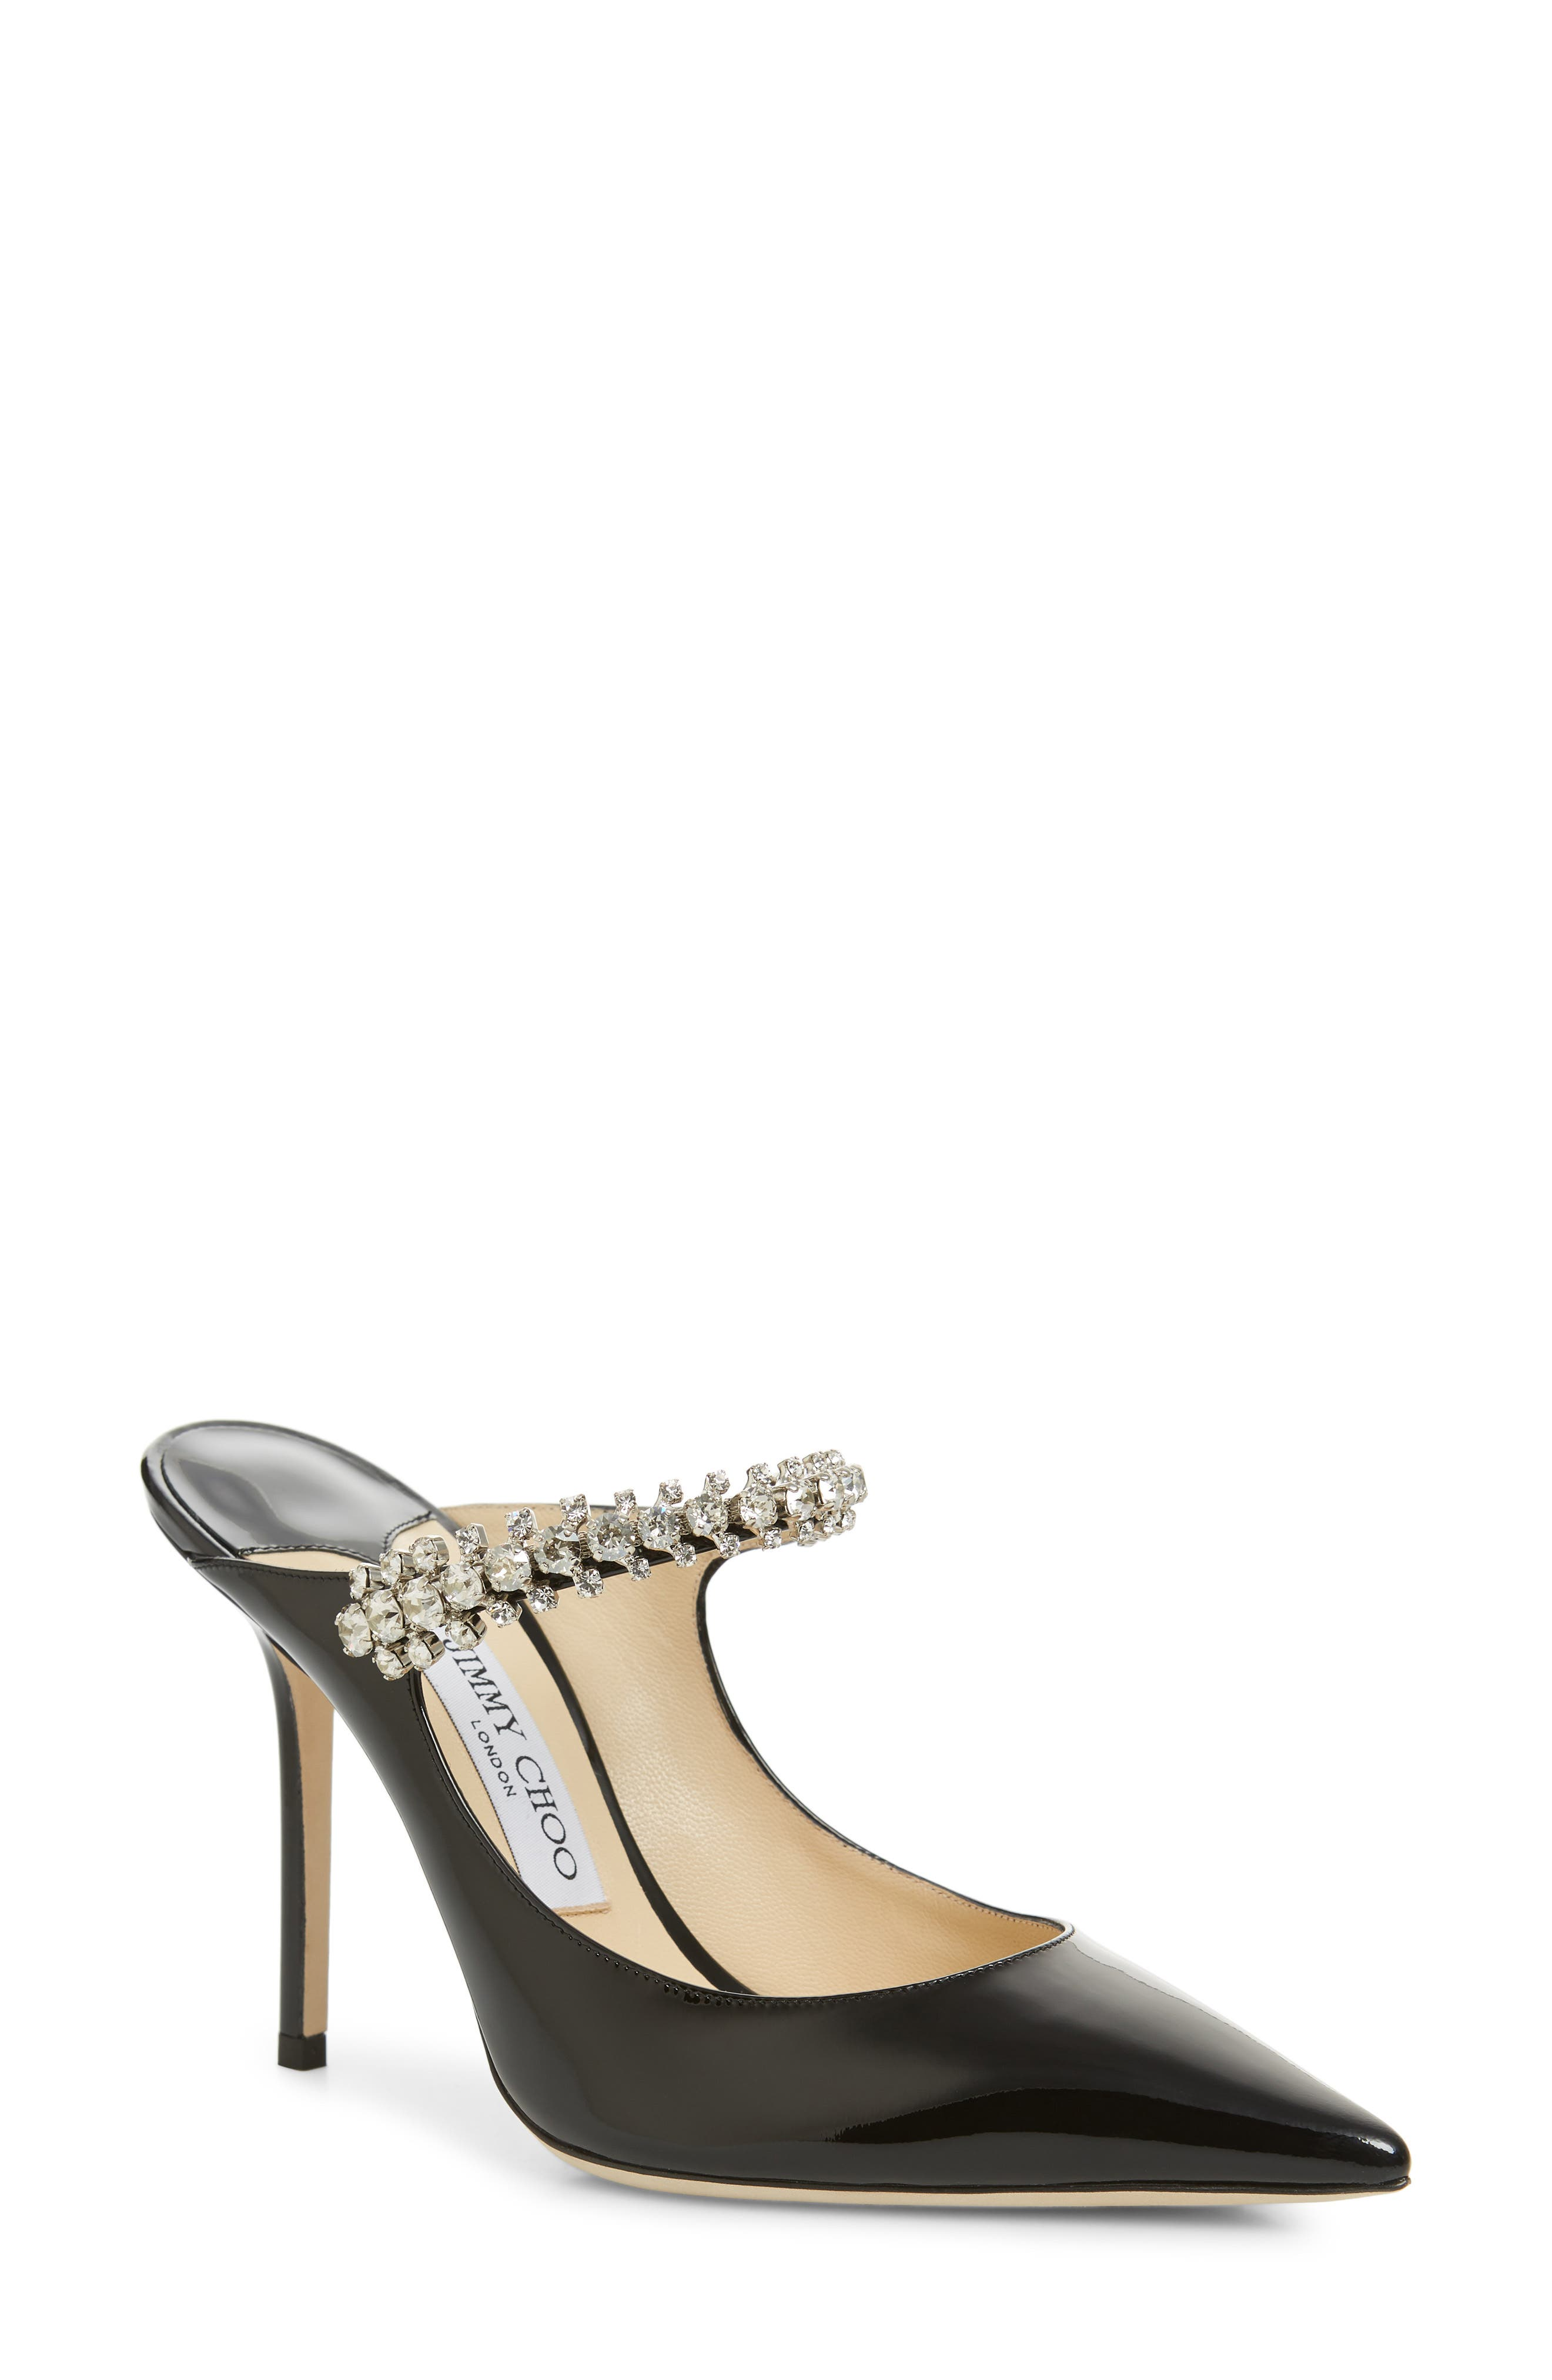 JIMMY CHOO Embellished Mule, Main, color, BLACK